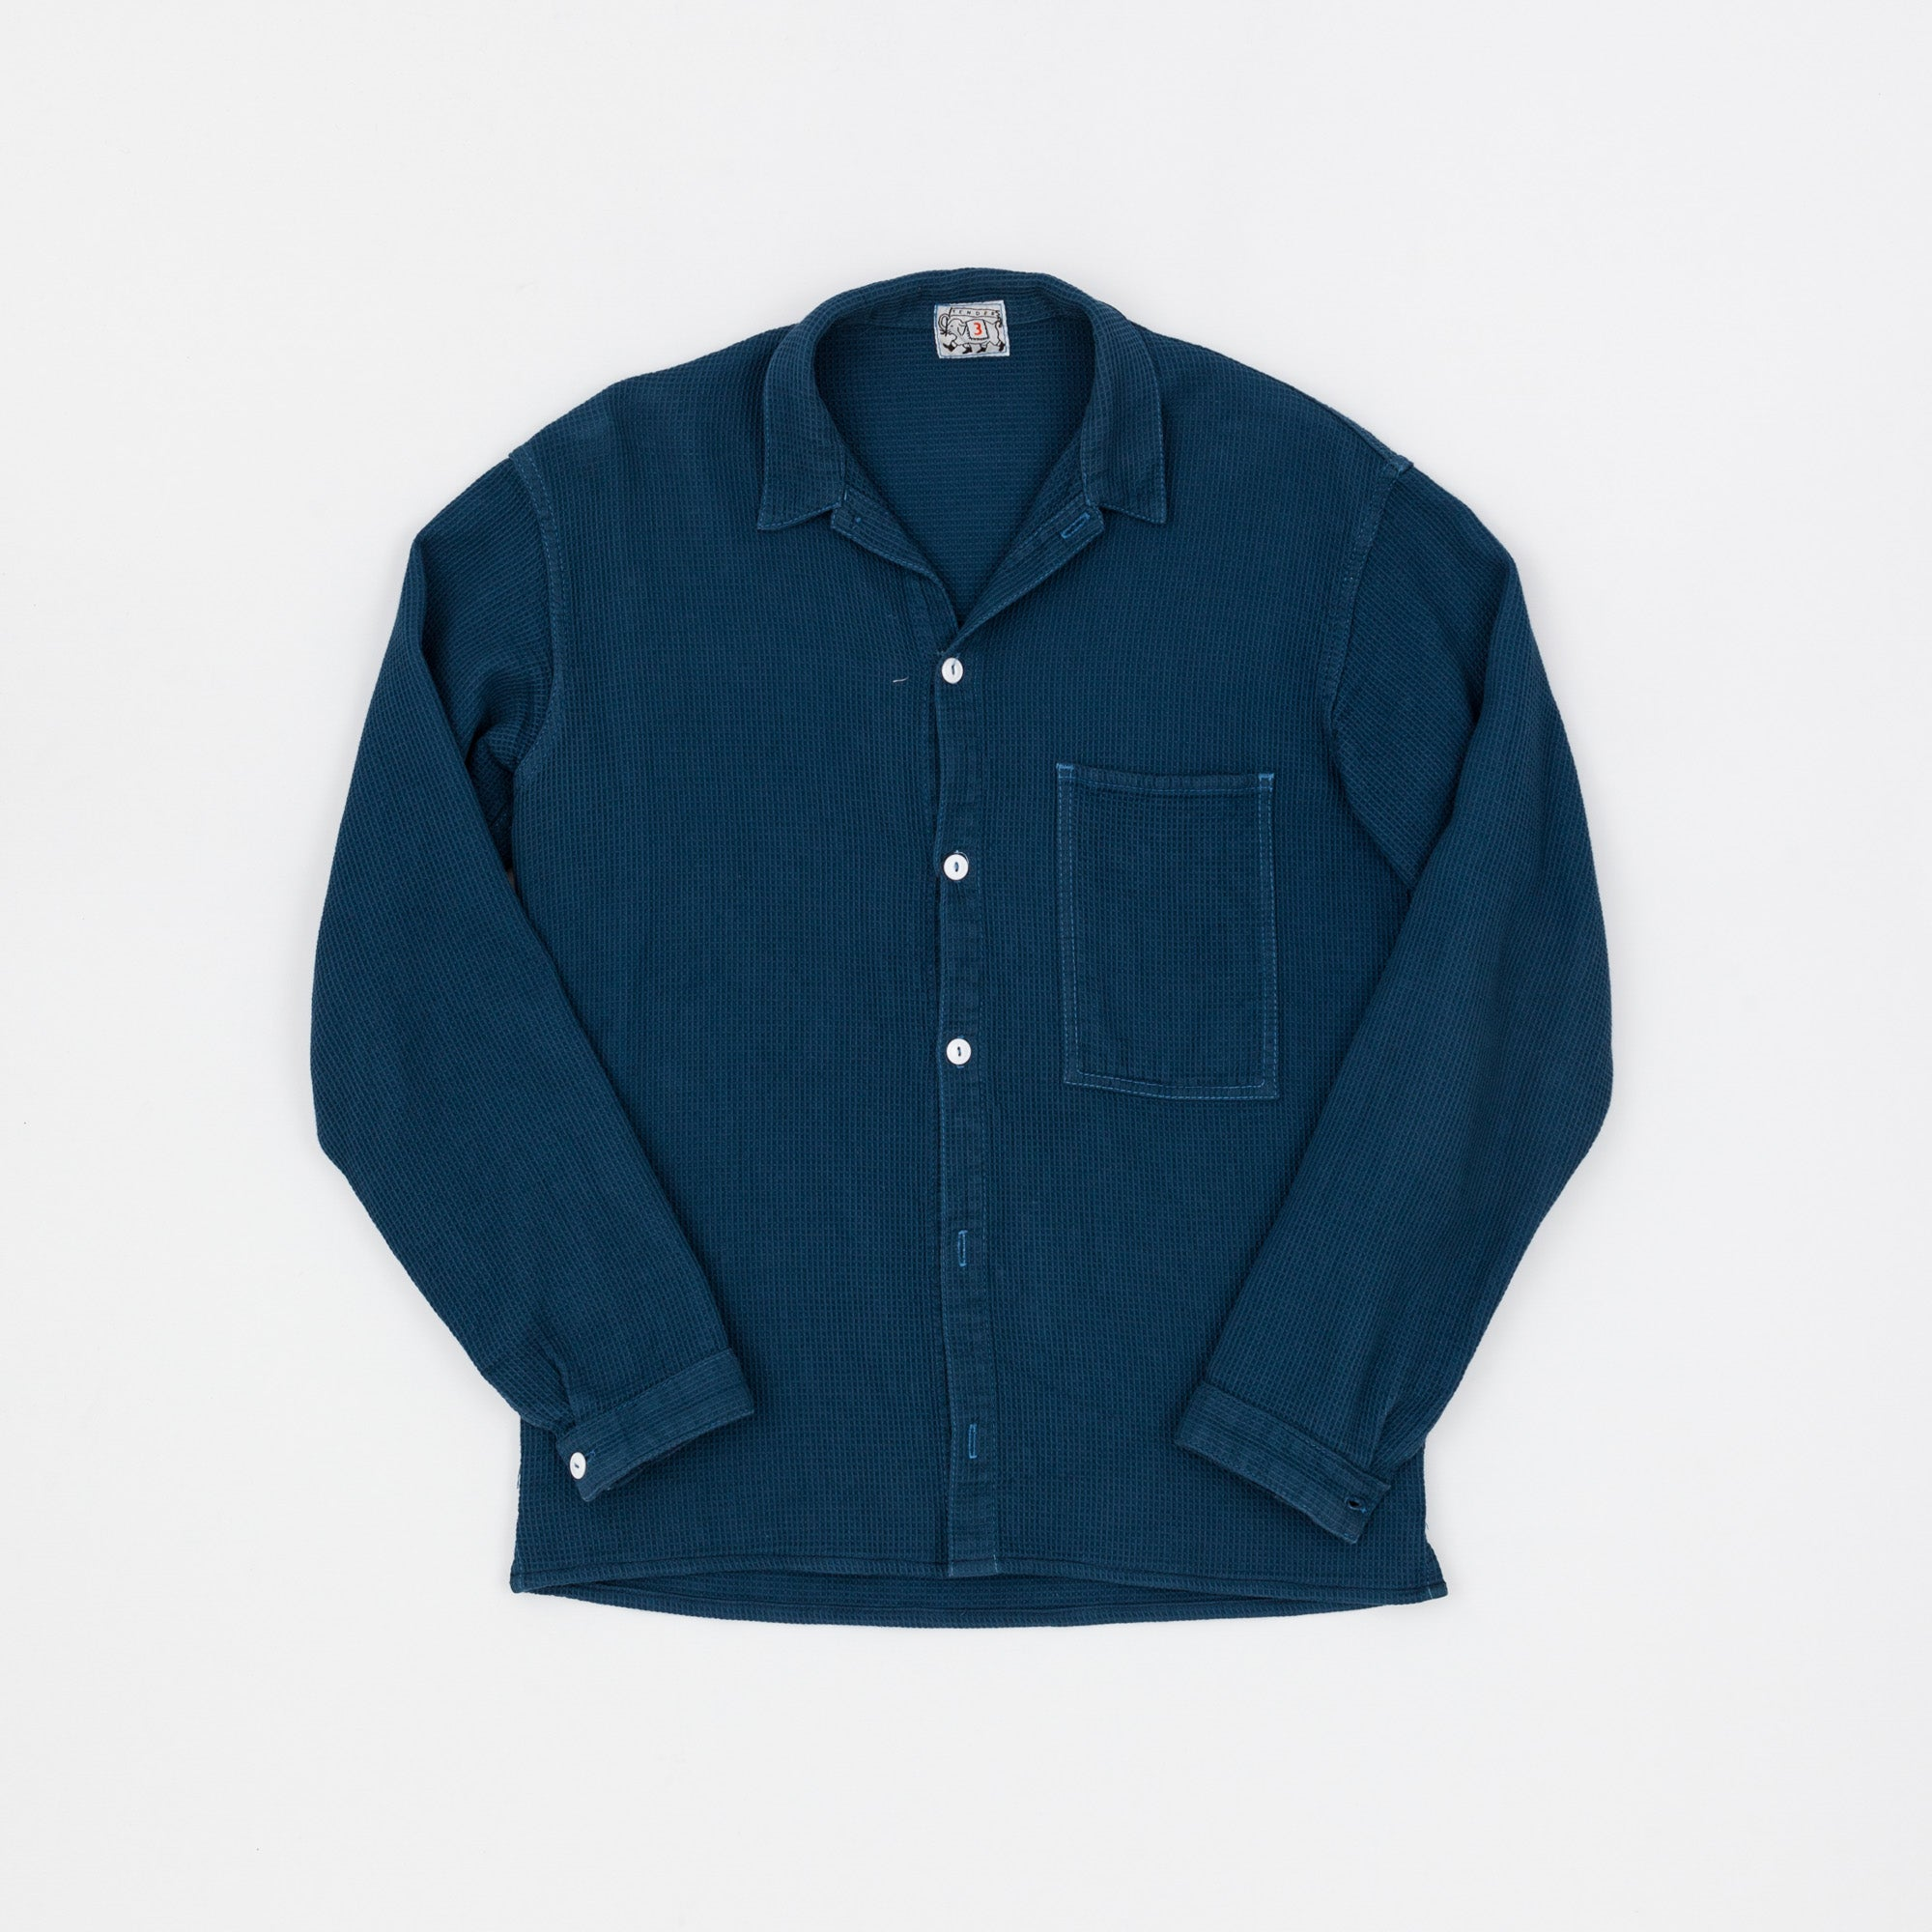 Tender Co. Woad Dyed Beerkeeper's Cloth Type 422